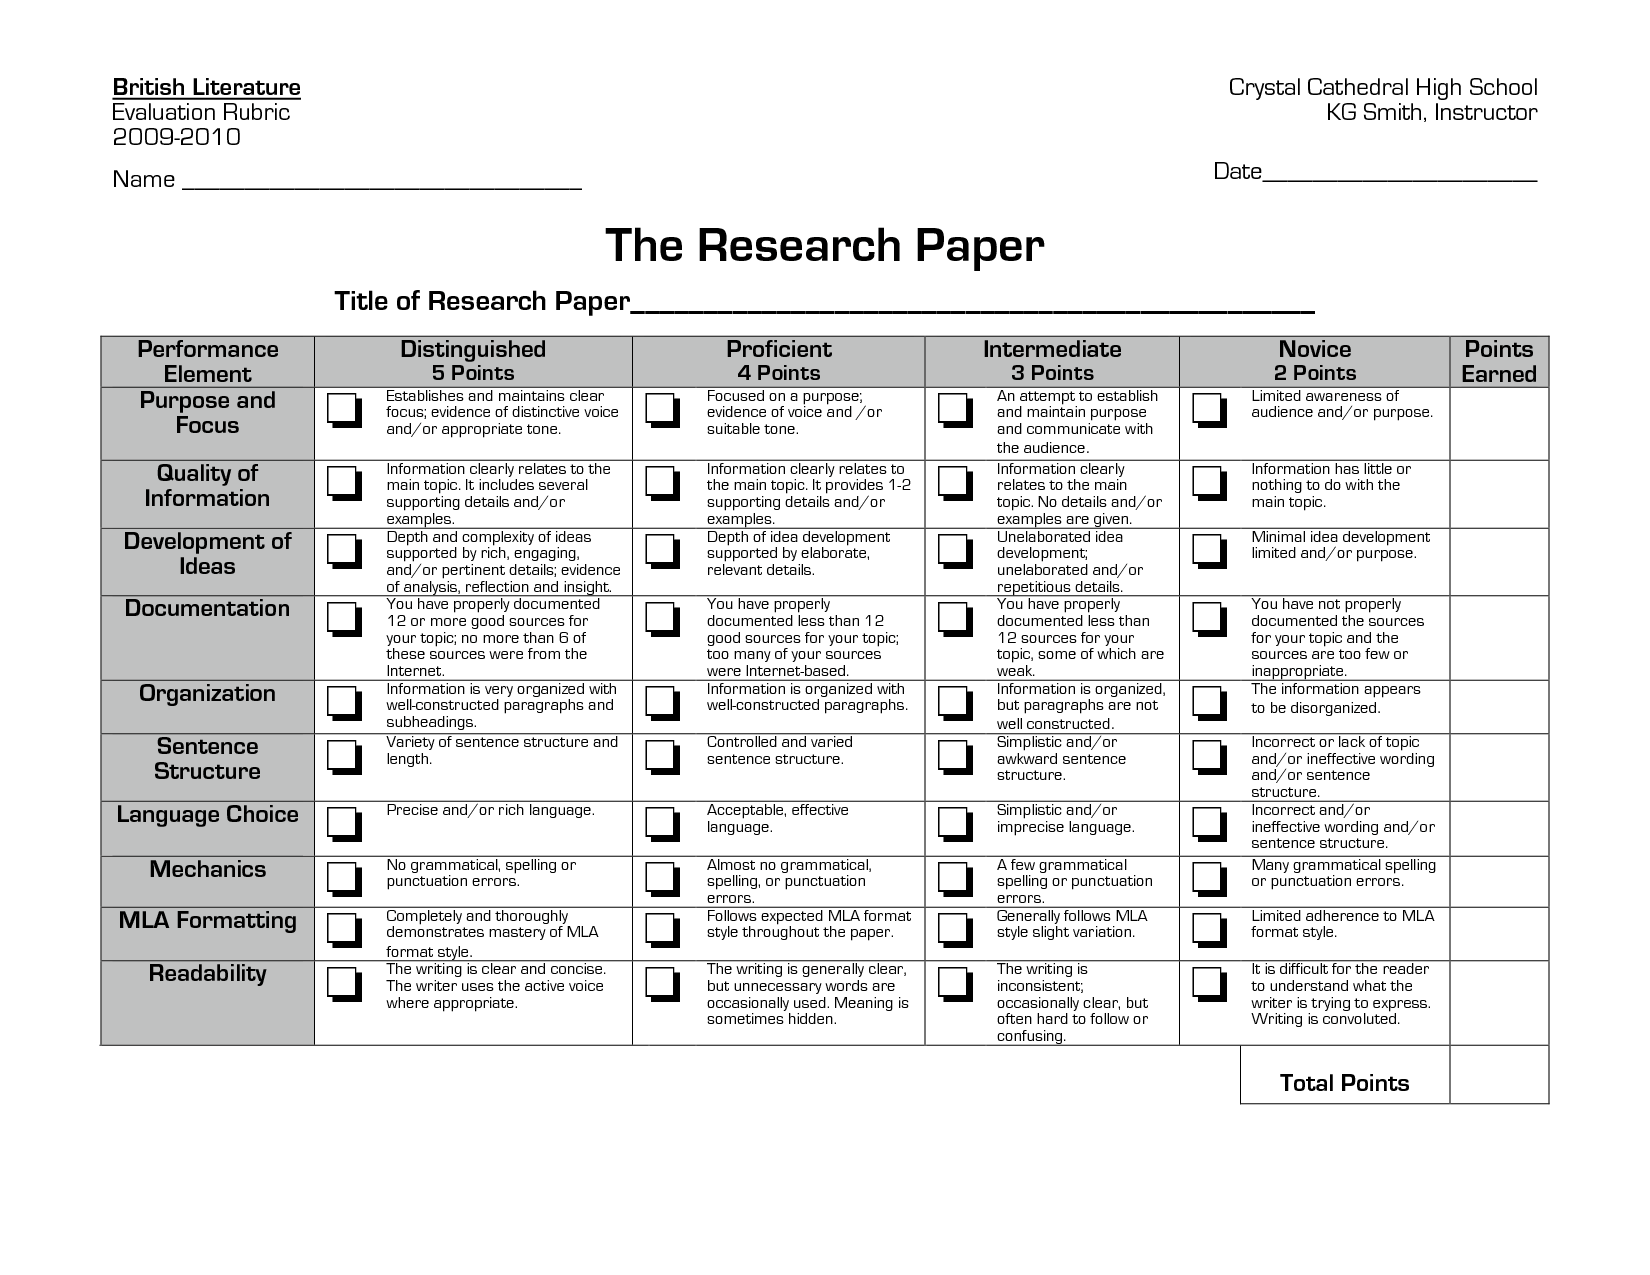 006 Research Paper Rubric For High Impressive School Topics Senior Qualitative Sample Students In The Philippines Full